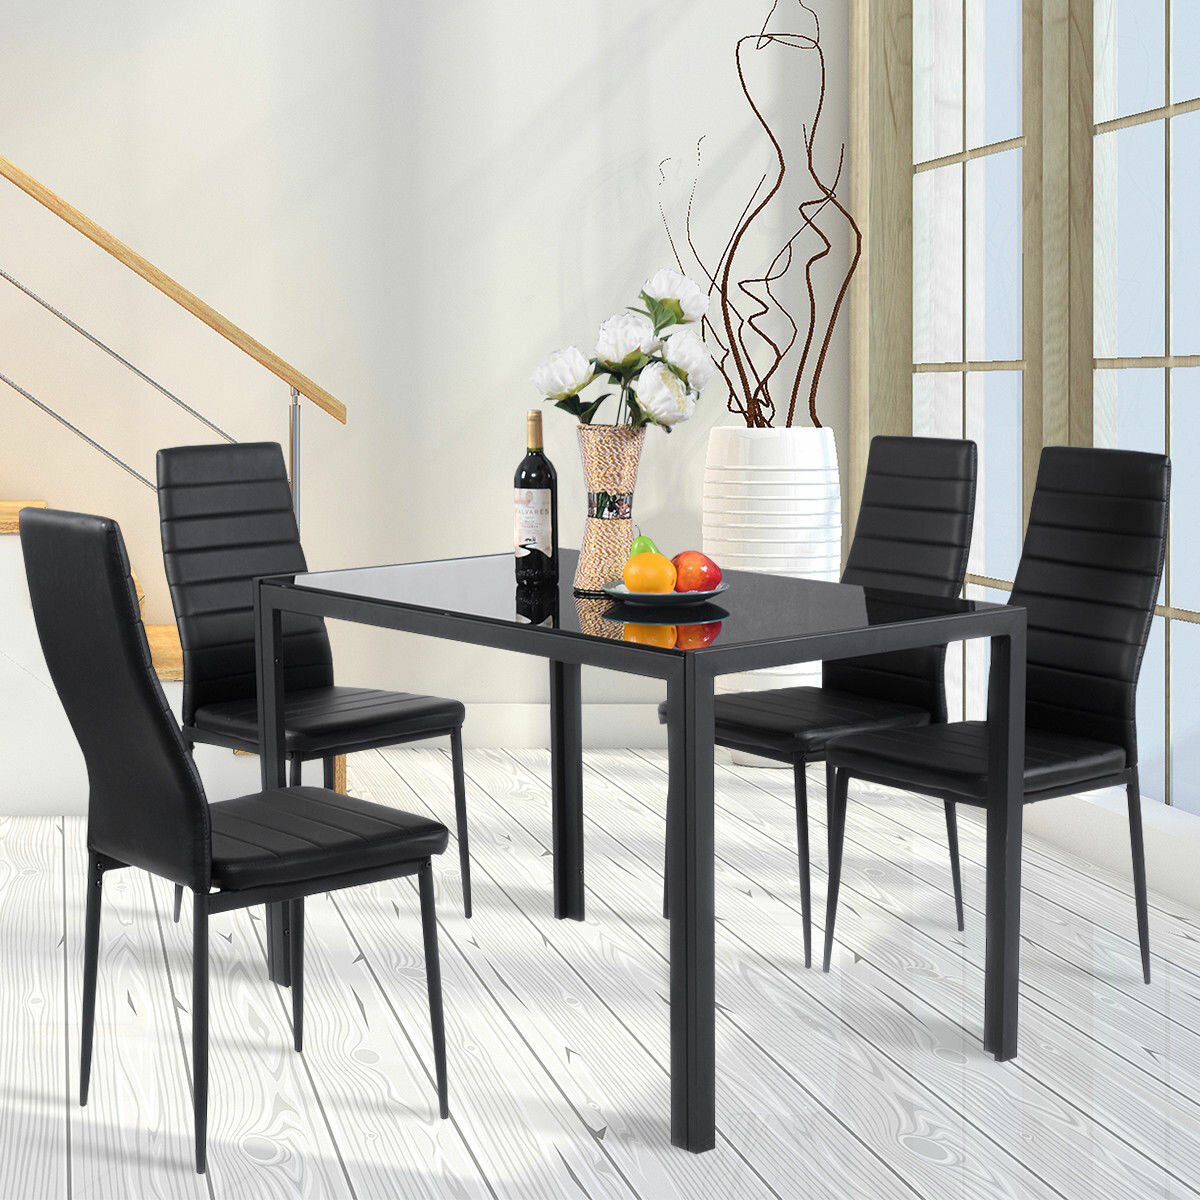 Details About Orren Ellis Edgeworth 5 Piece Dining Set With Recent Travon 5 Piece Dining Sets (View 6 of 20)